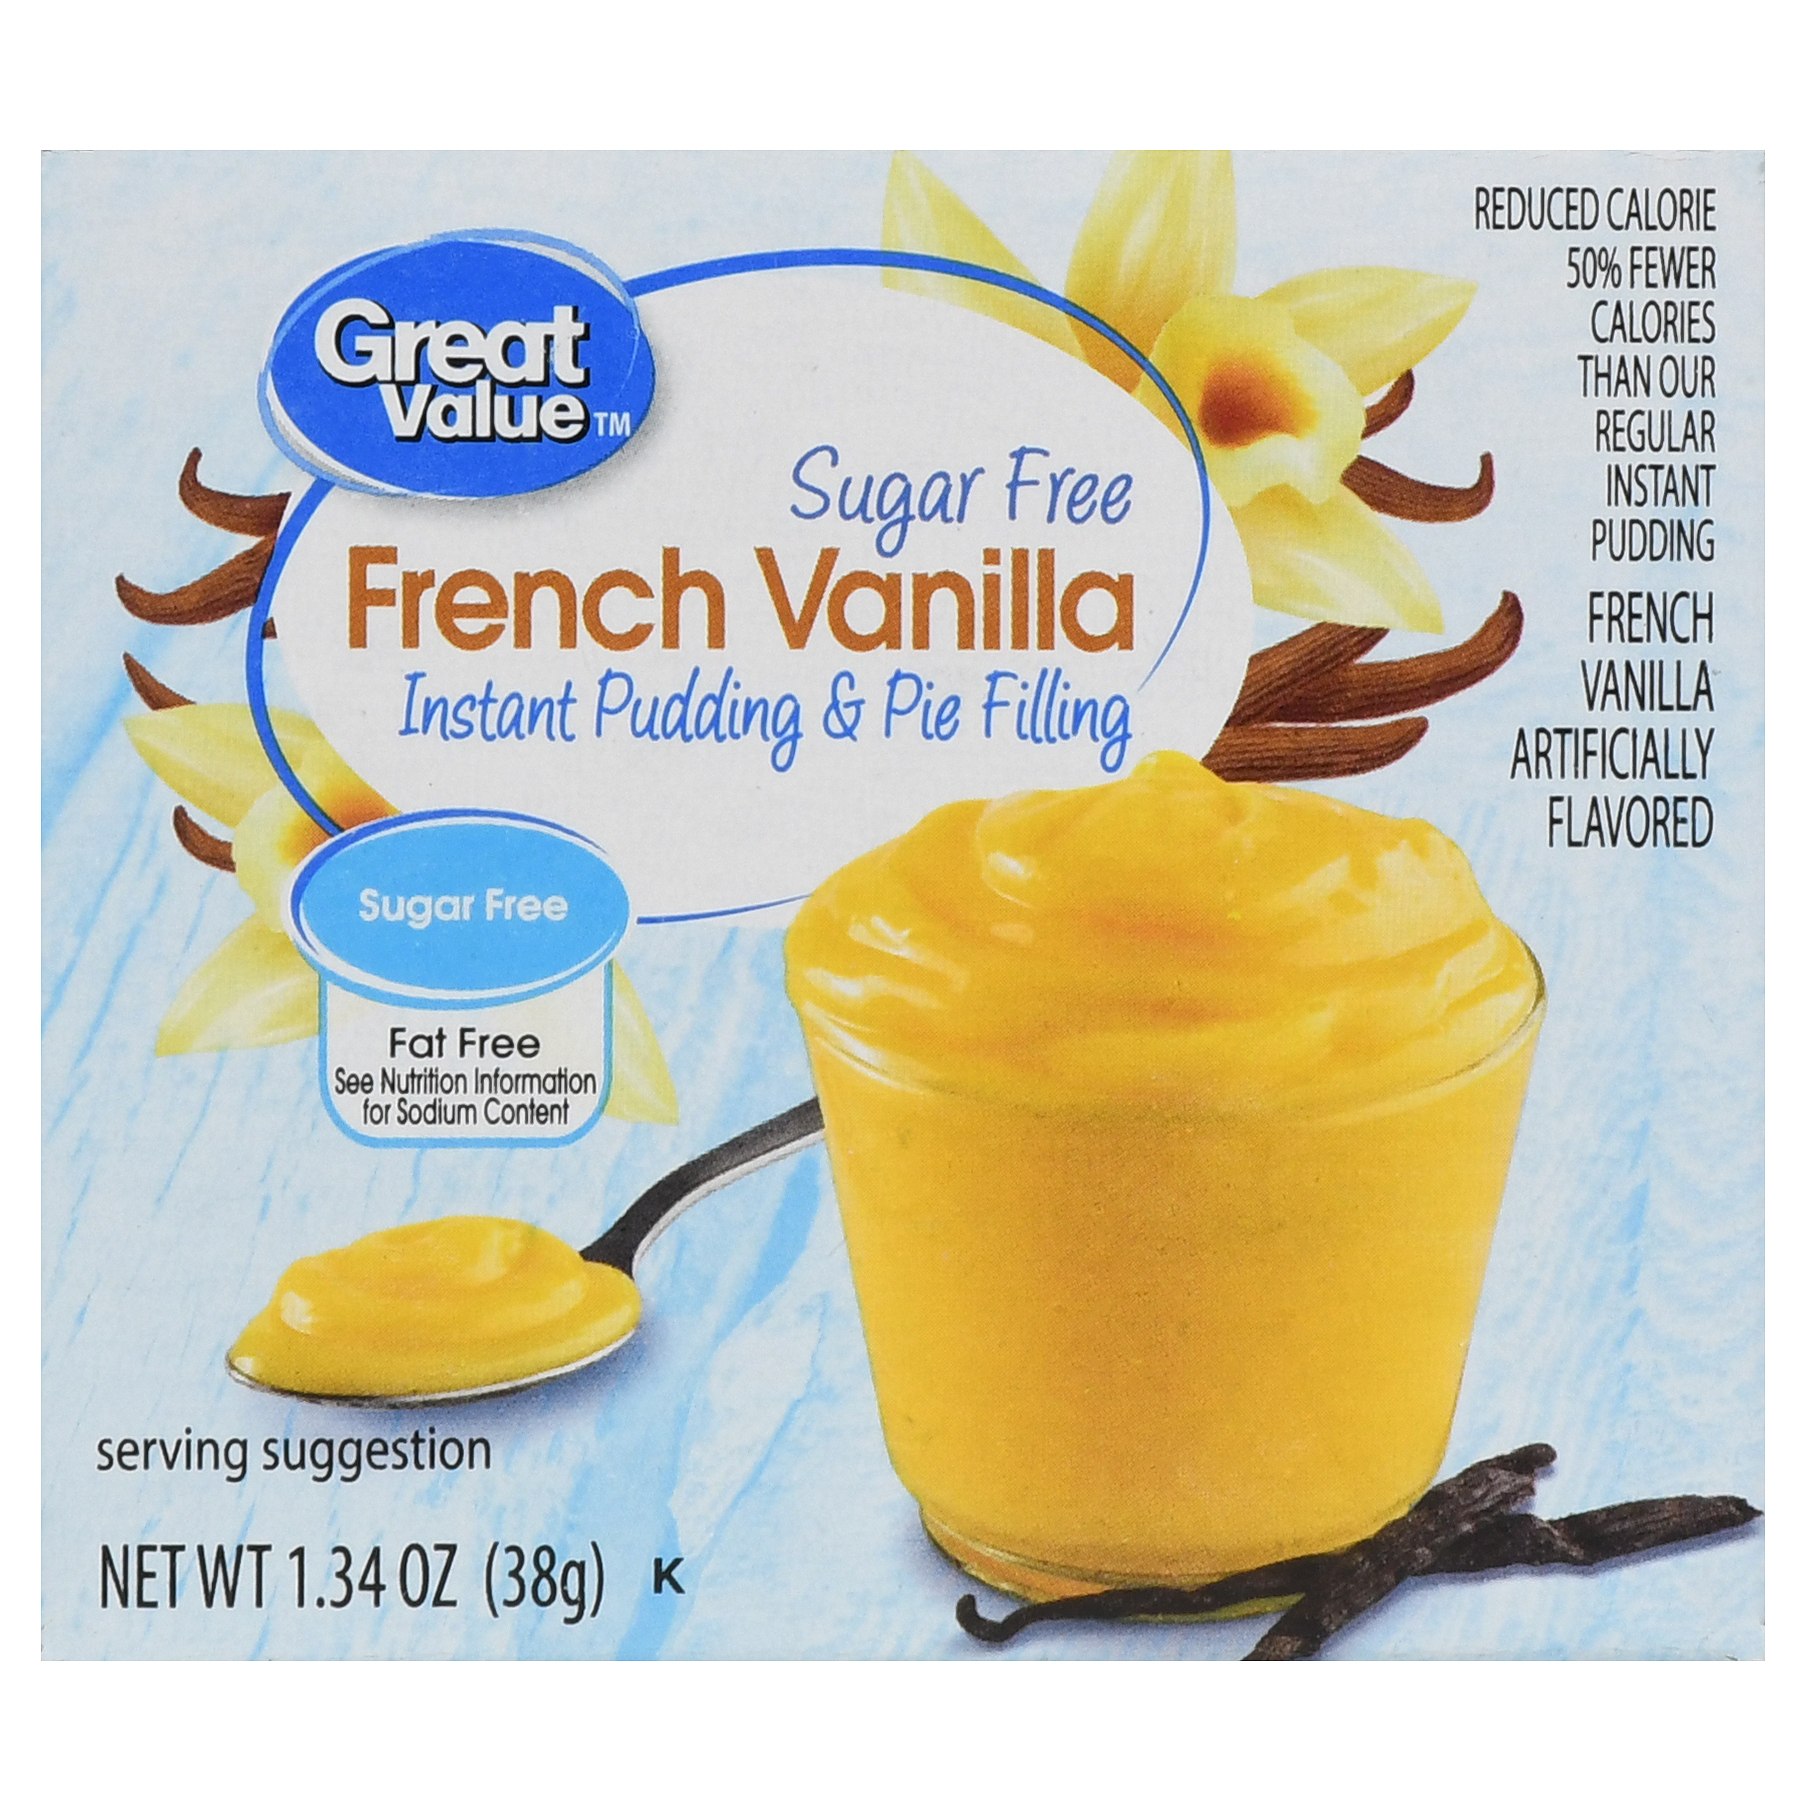 Great Value Instant Pudding & Pie Filling, Vanilla, Sugar Free, 1.34 oz